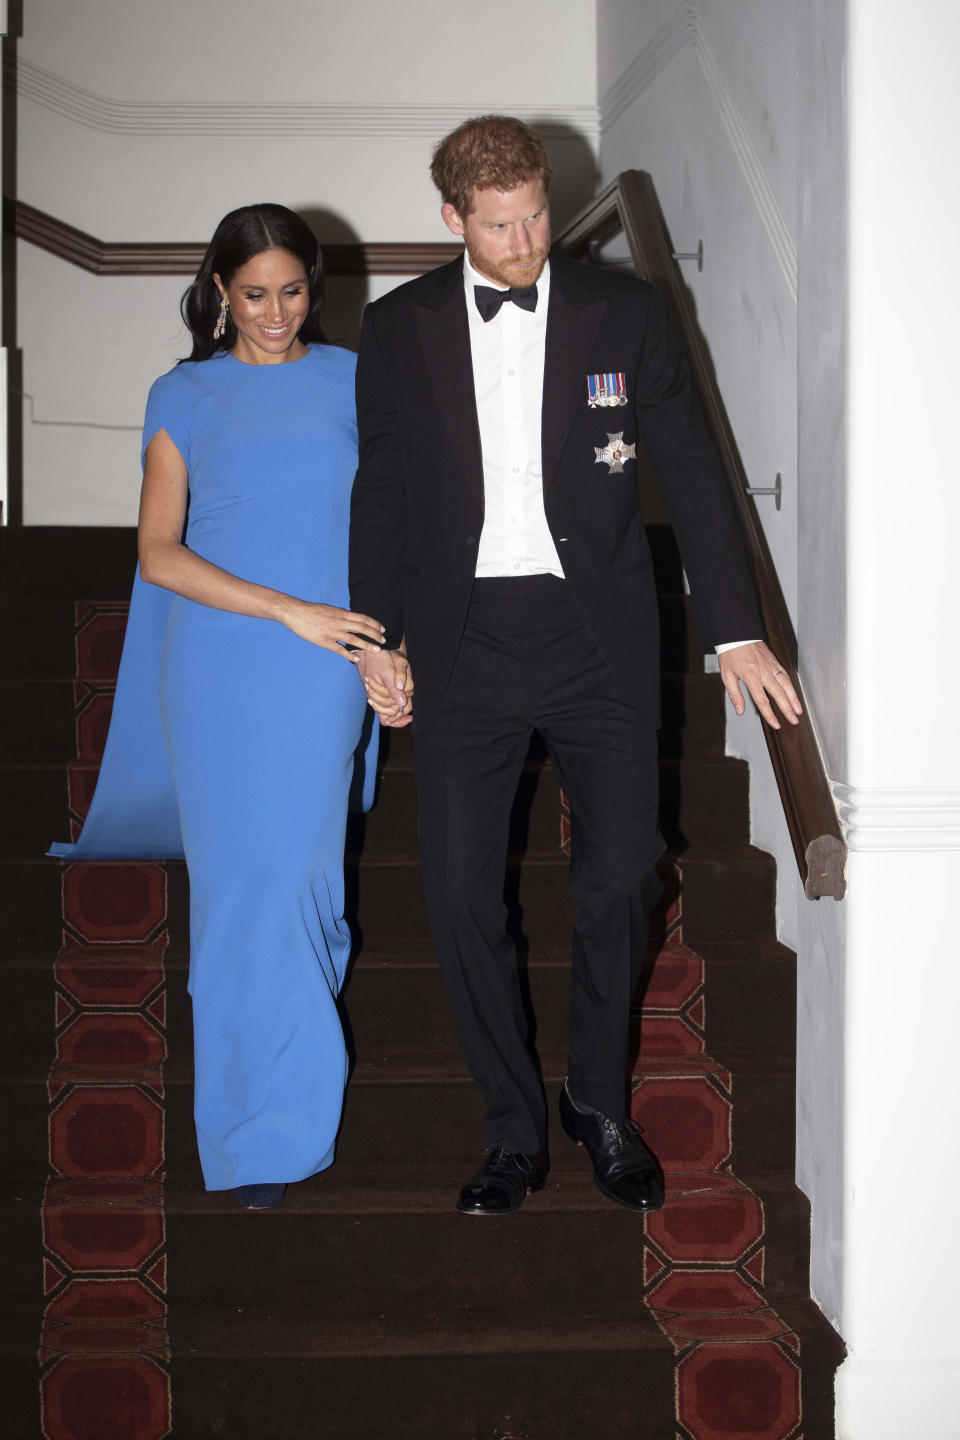 <p>On day seven of the Duke and Duchess of Sussex's royal tour, Meghan wore a £1,095 powder blue dress by Safiyaa. <em>[Photo: Getty]</em> </p>